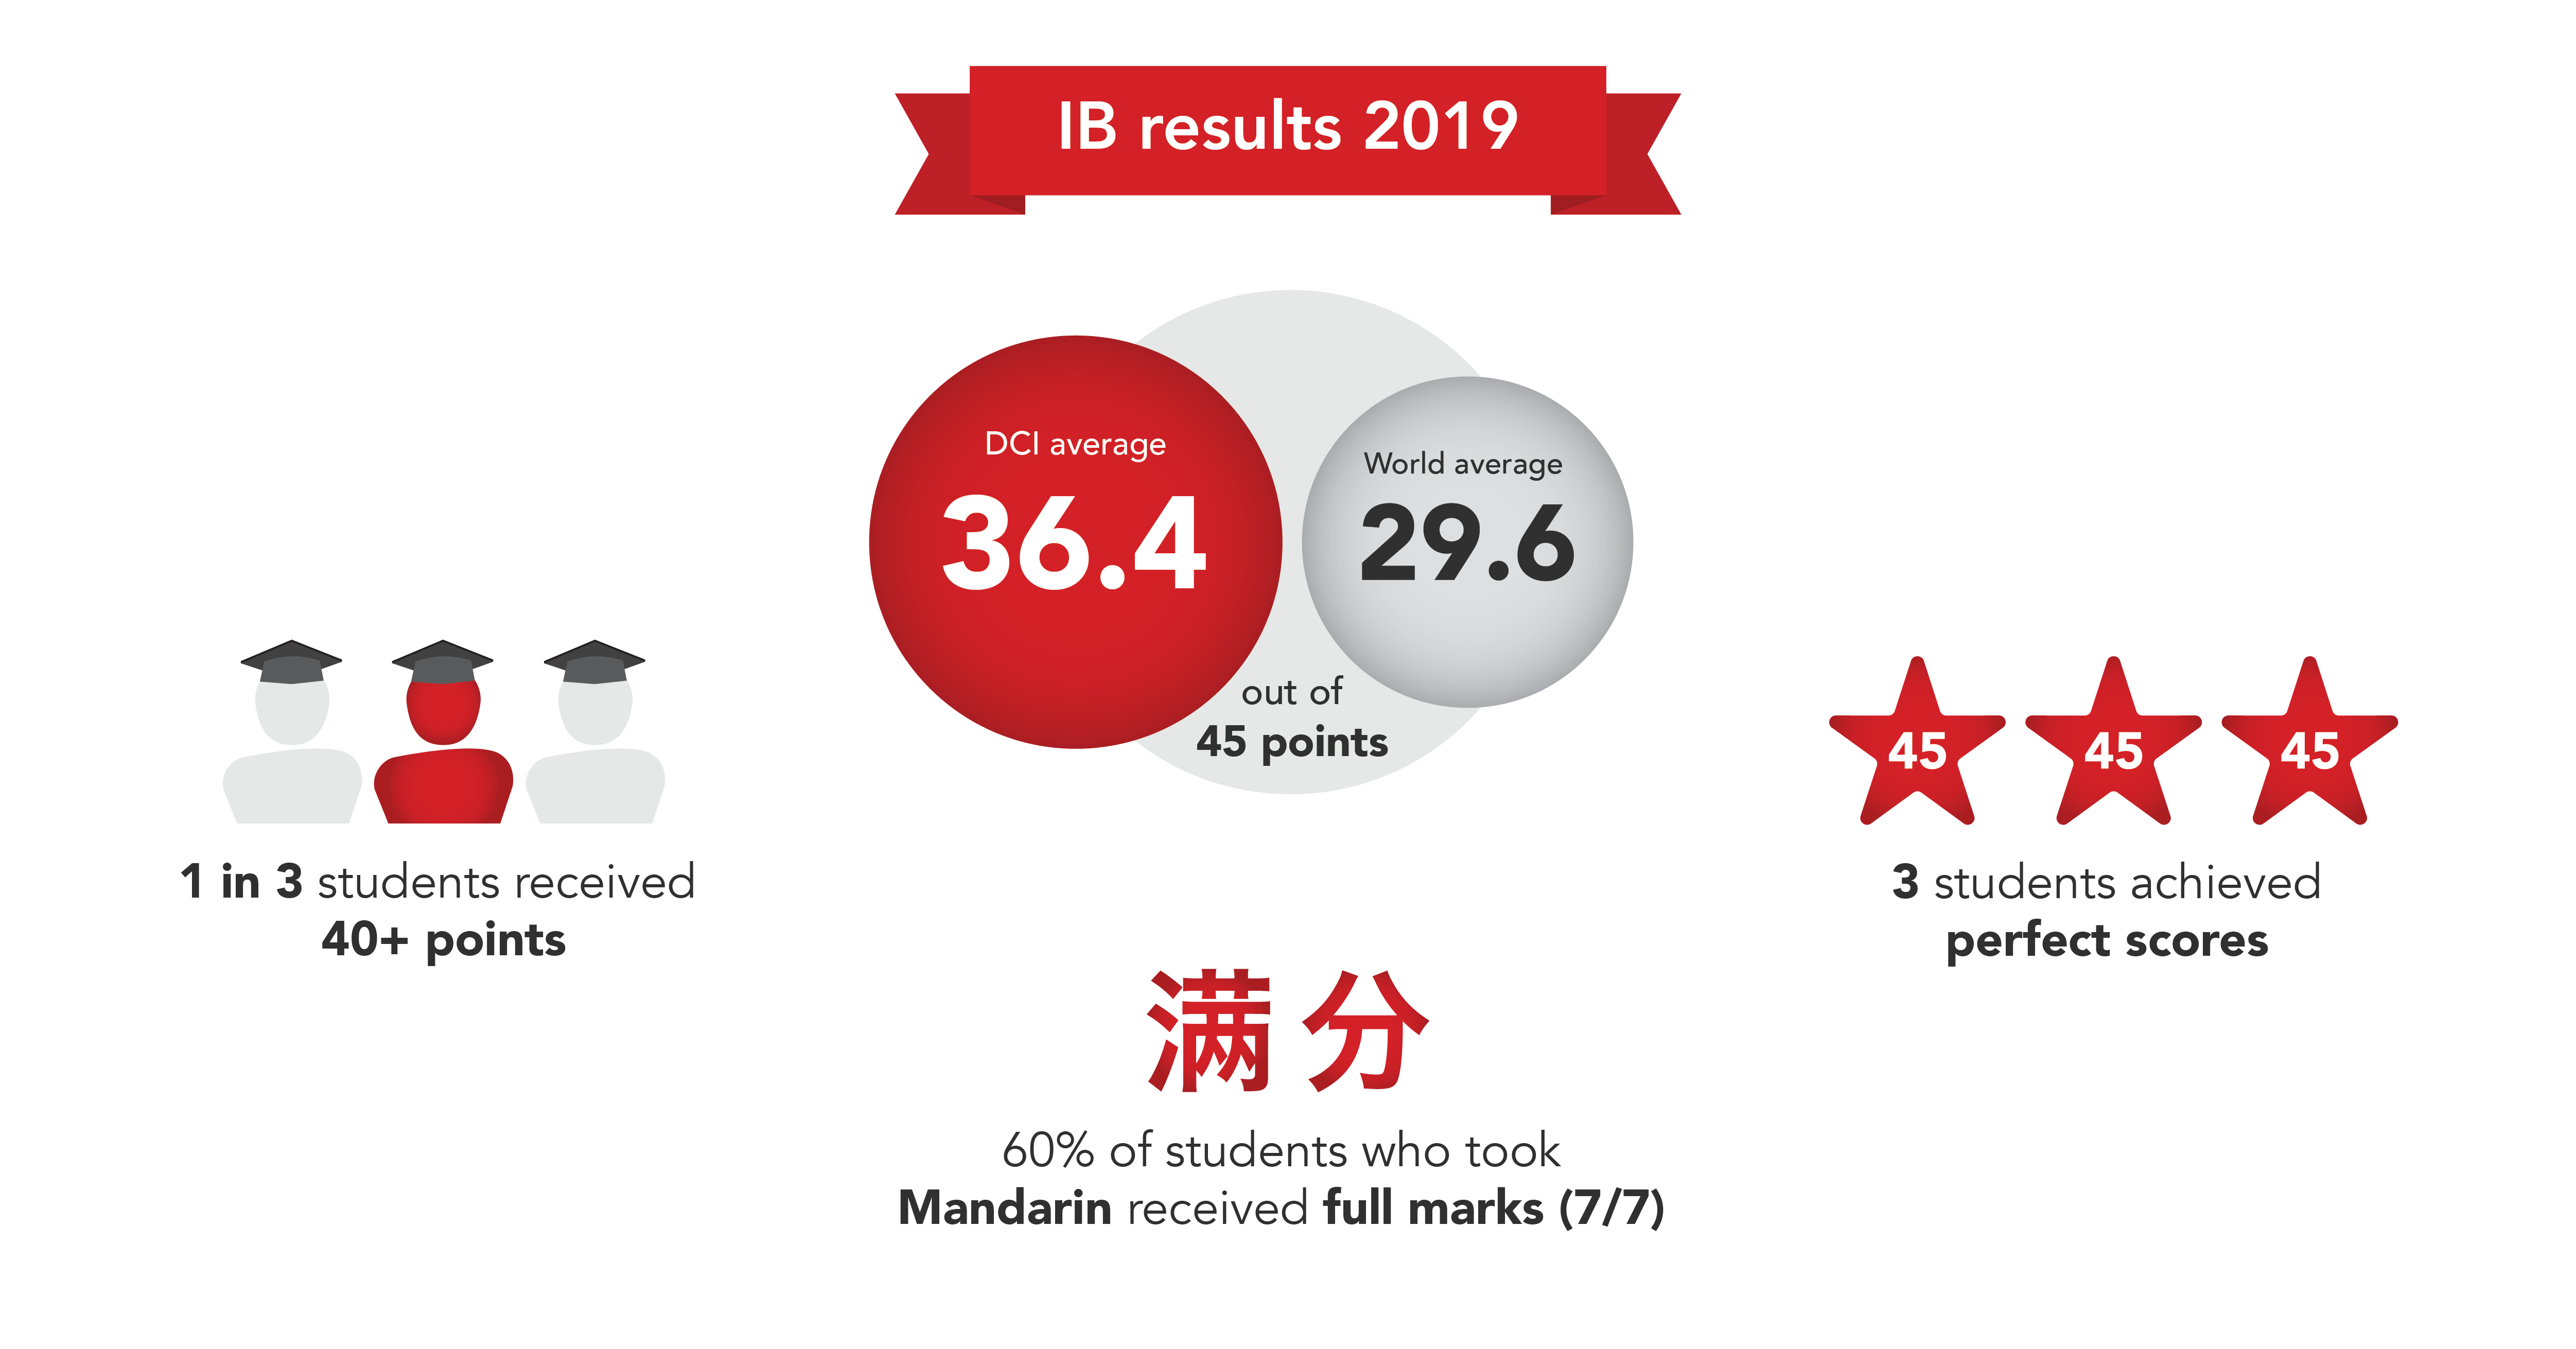 ib-dci-results-2019-02-20191018-171716-972